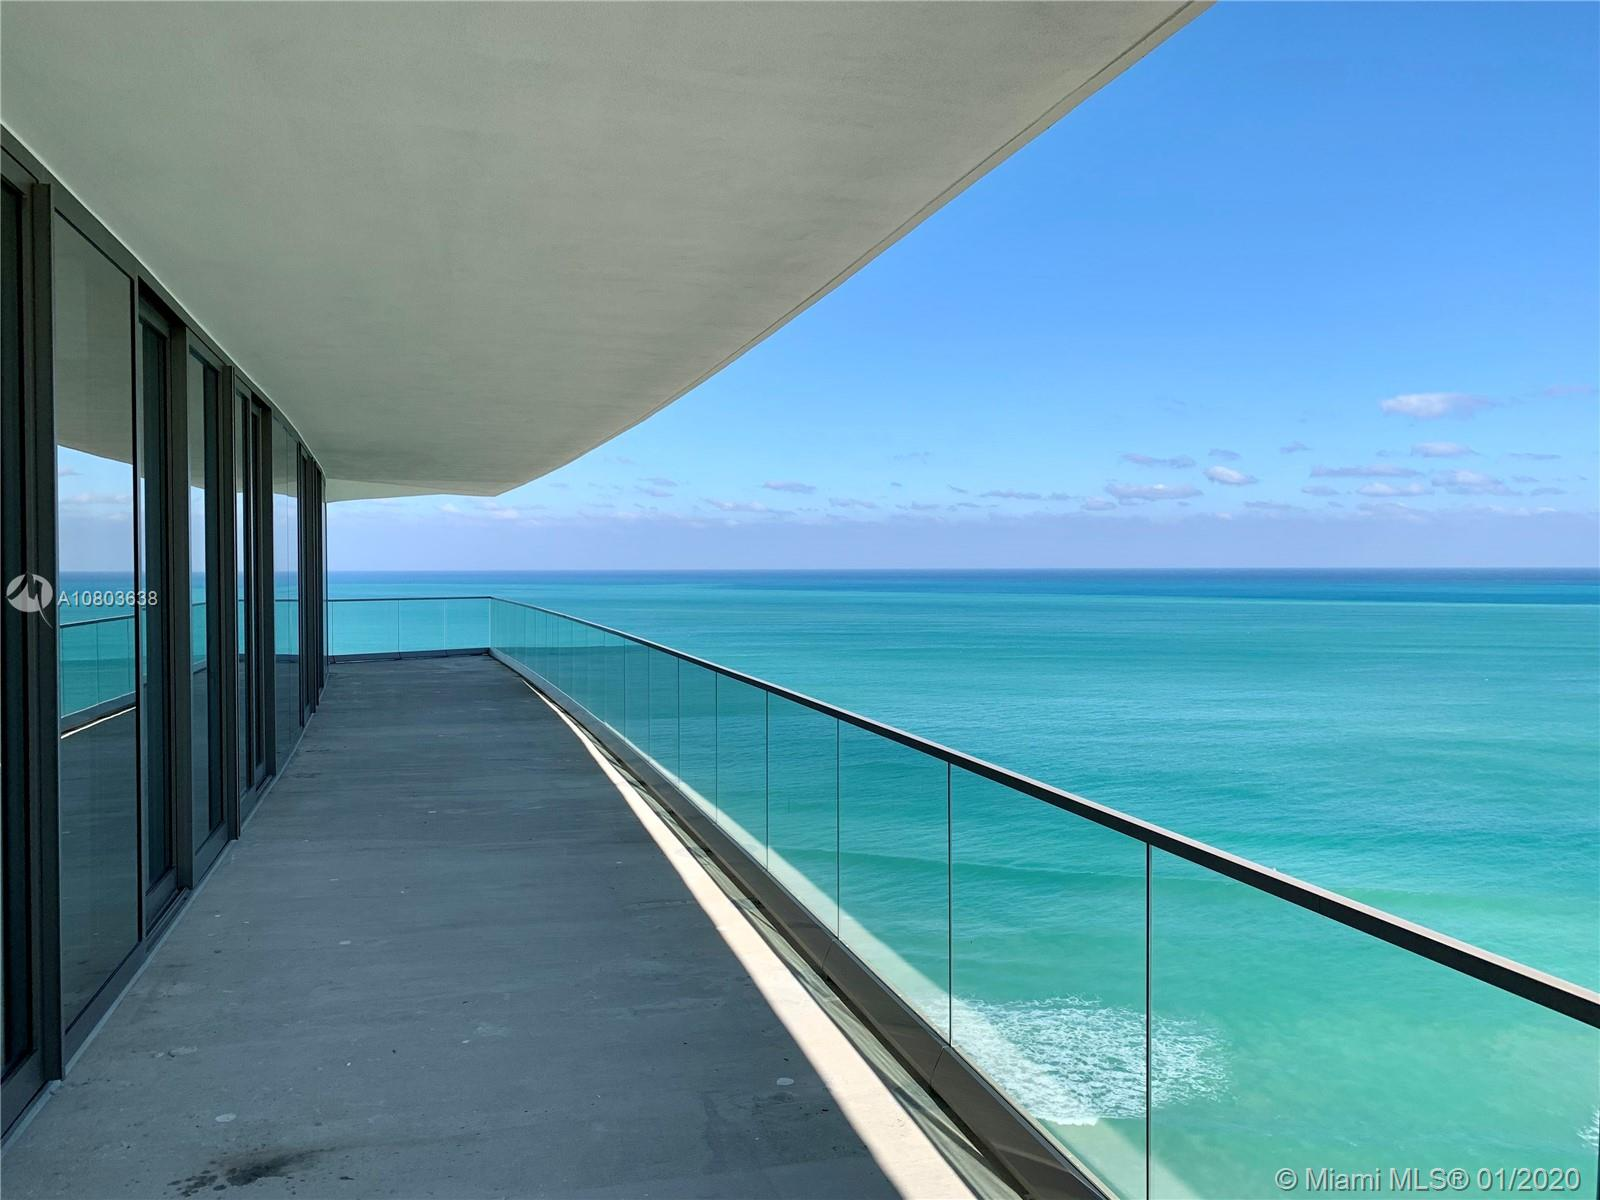 5% COMMISSION FOR BUYER'S AGENT. Armani Casa is the newest, most elegant and beautiful building on the beach of the Florida Riviera, in Sunny Isles Beach. This unit is the biggest corner line of the building with unobstructed ocean, intracoastal and city views. 4 Bed + Staff Room, 5 1/2 Bath, with a huge Balcony and an outdoor summer kitchen. Luxury Kitchen and Bathrooms designed by Armani Casa. Kitchen comes with Sub-Zero and Wolf Appliances with stone counter tops, Washer & Dryer, 2 Elevators opening to your Private Foyer. This unit is a dream come true, a must see. Building has a 24 hour Attended Lobby, Security, Concierge and Valet Parking. Beach Club, Pool, SPA, GYM, Wine, Cigar, Kids and Game Rooms, Library, Social Room, Pet Friendly and much more. EASY TO SHOW.